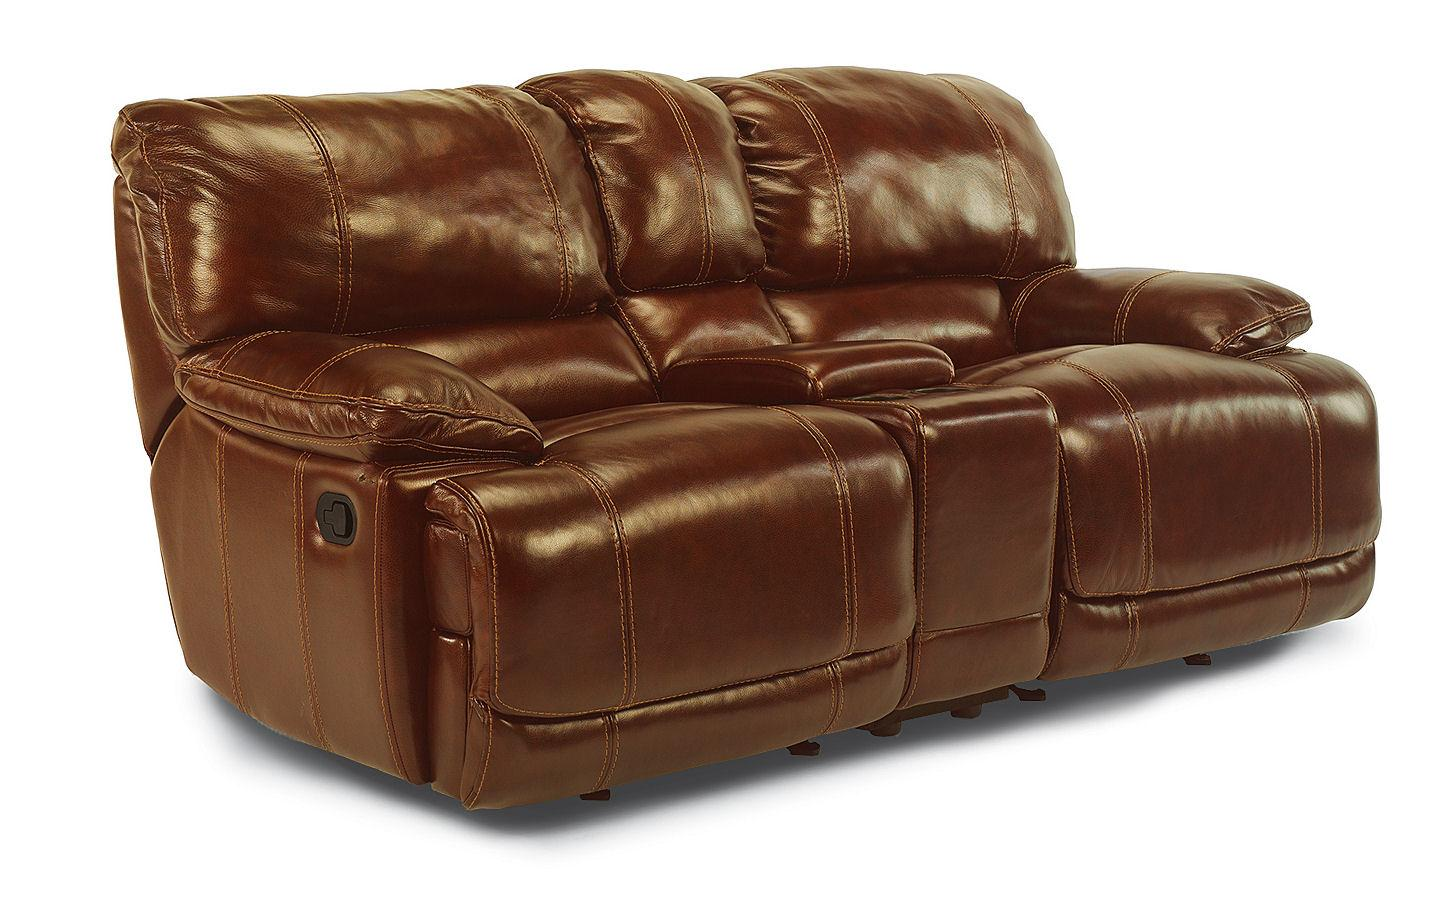 Flexsteel Latitudes - Belmont Power Dual Reclining Love Seat with Console - Item Number: 1250-604P-794-76